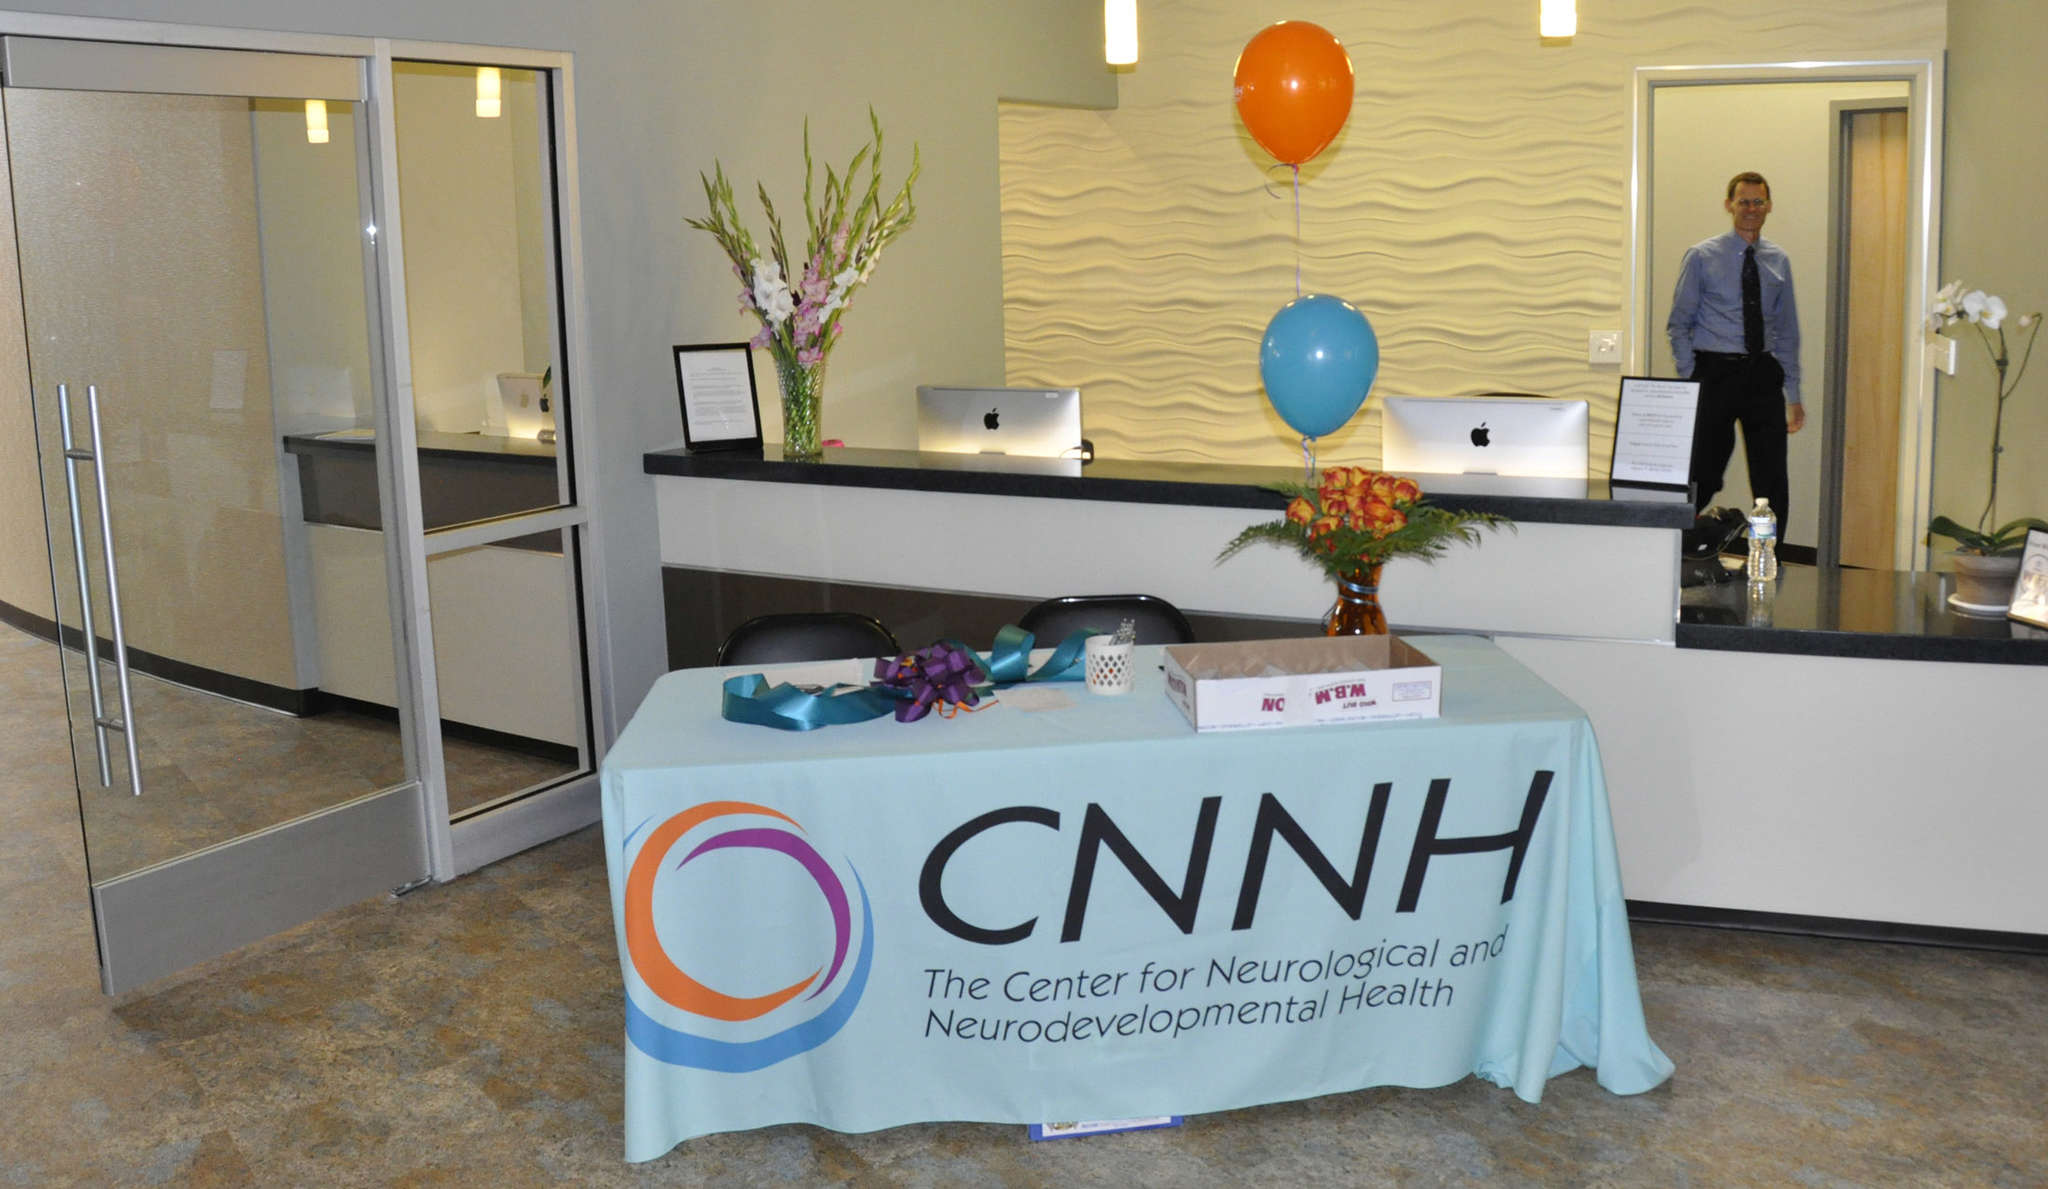 Being at Voorhees Town Center has benefits for patients and staff alike at the Center for Neurological and Neurodevelopmental Health.